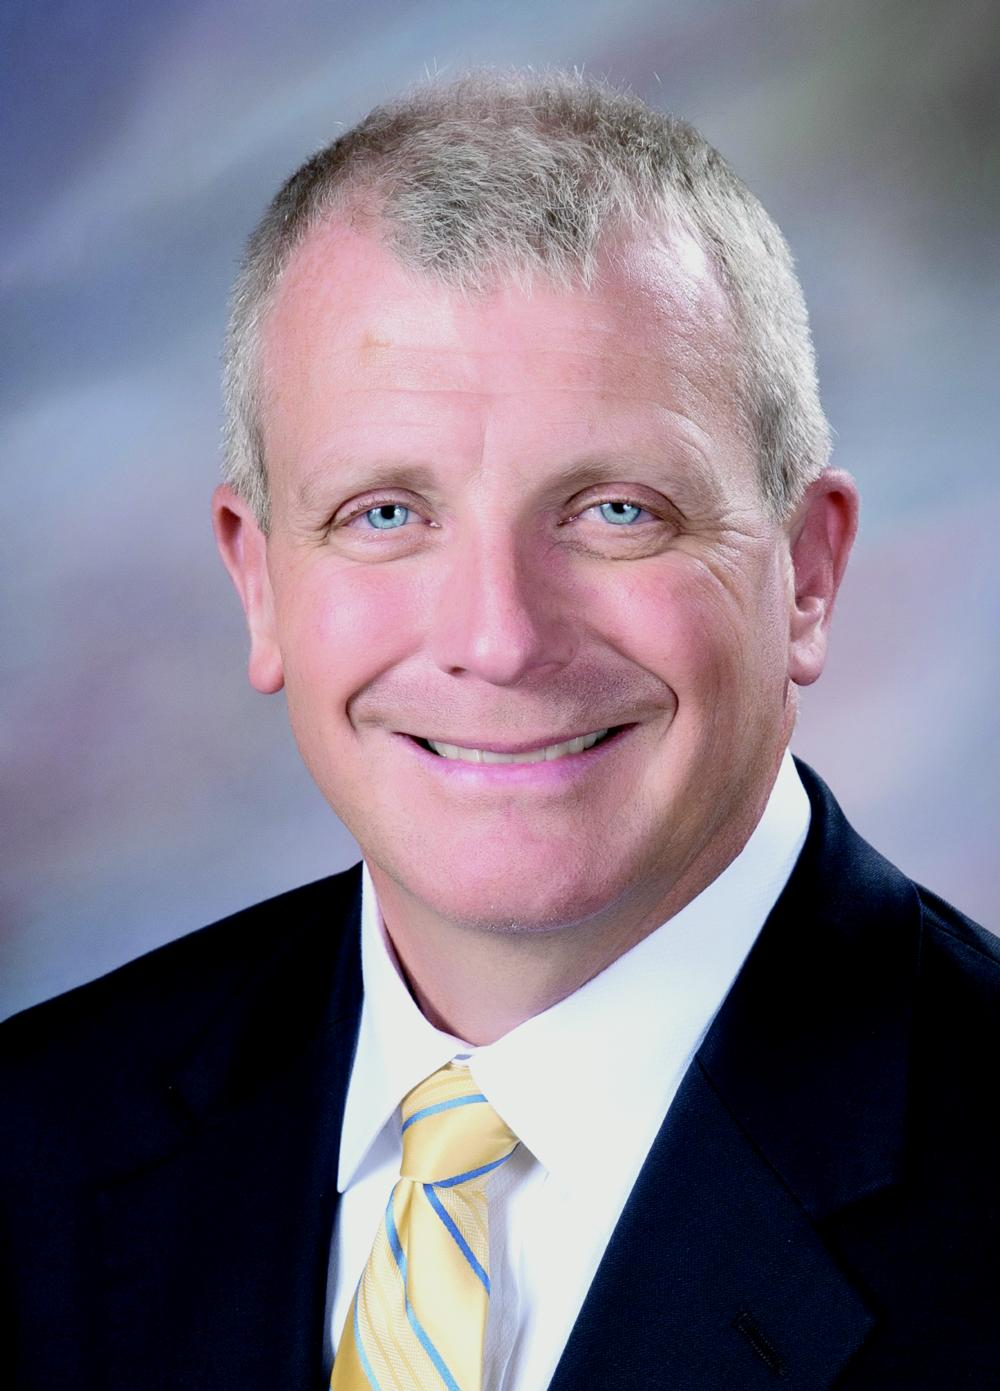 Moore wins another term as Probate Judge | Franklin Free Press